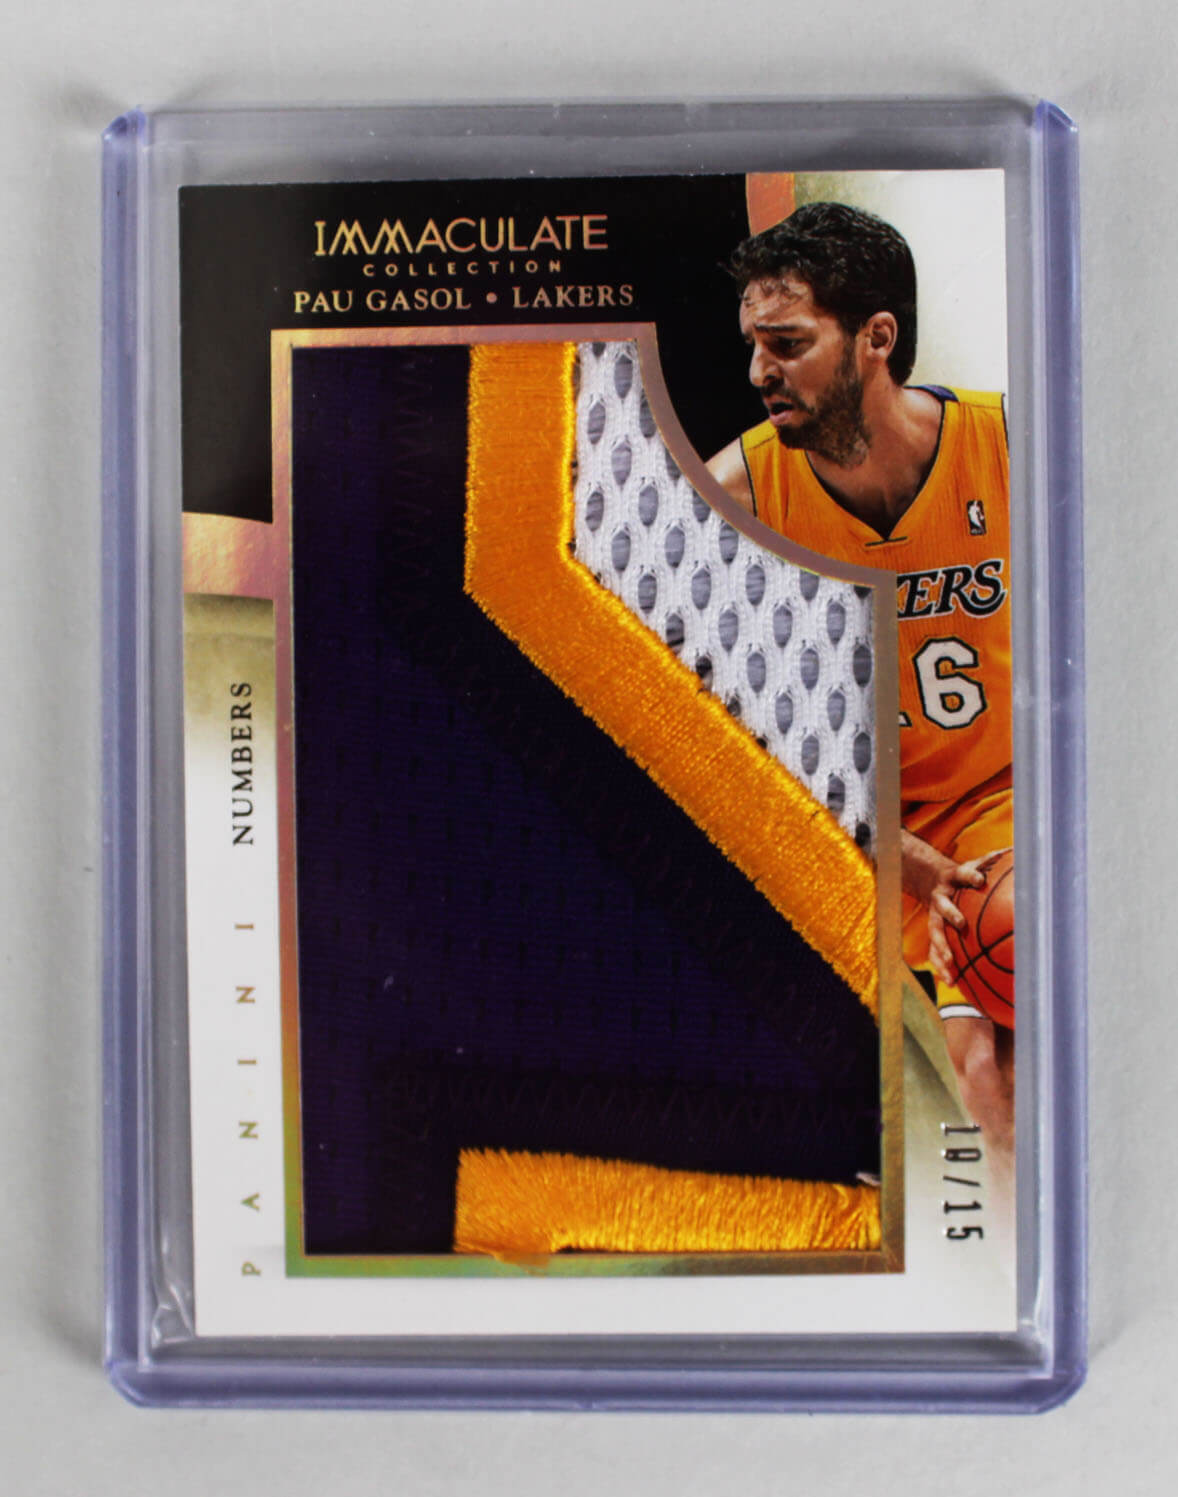 2013-14 Panini Immaculate - Los Angeles Lakers Pau Gasol Game-Used Worn Jersey Patch Card 10/15